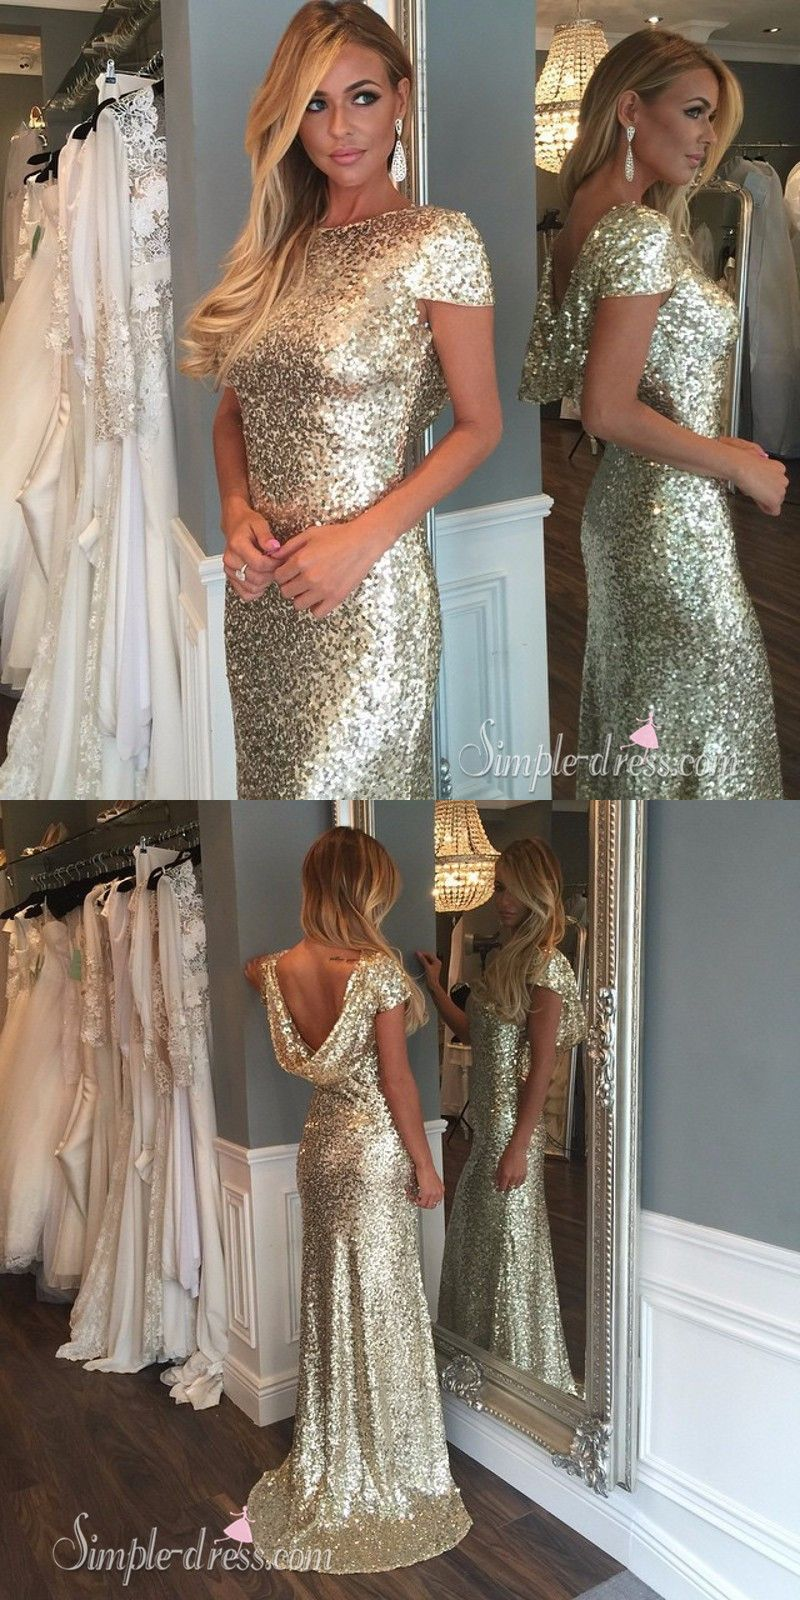 All that glitters is gold night time wedding bridesmaid dresses 2016 long gold sequins prom dress party dress wedding party dress bridesmaid dress cap sleeves ombrellifo Gallery